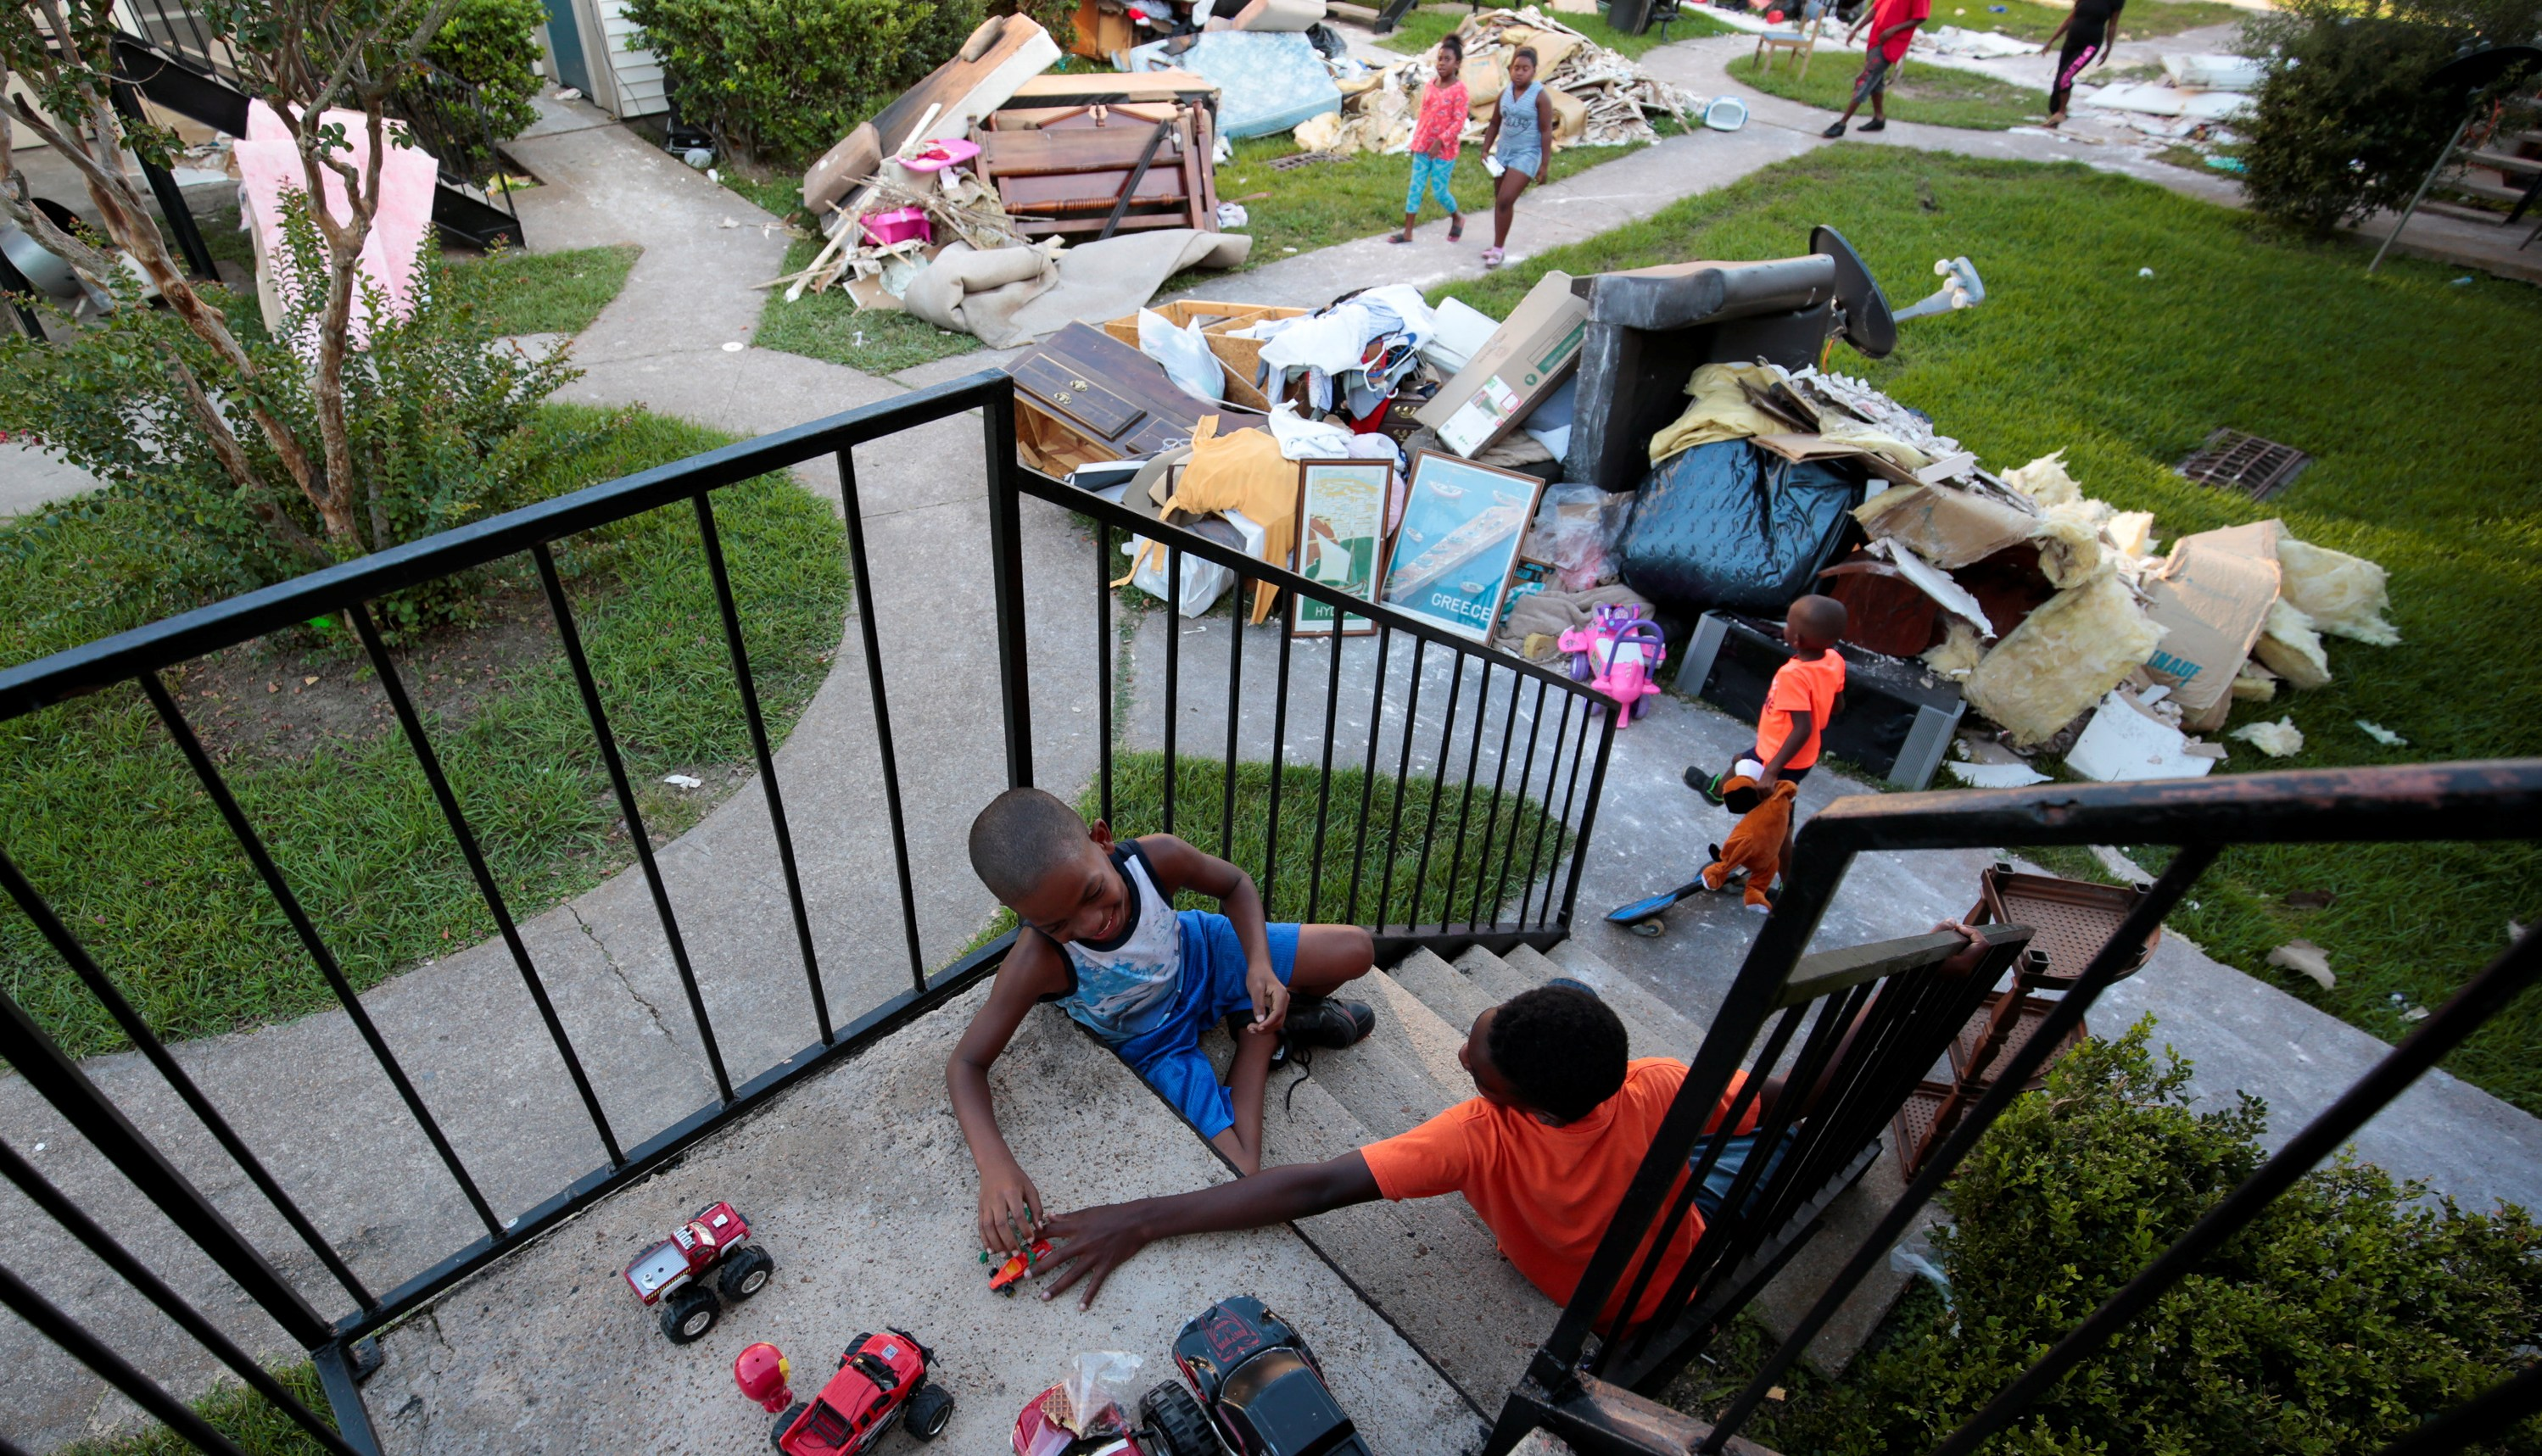 From left, Darius Smith, 9,  Kameron Smith, 4, and Deandre Green, 10, play with toys that they found in the piles of destroyed property at Crofton Place Apartments in the aftermath of Hurricane Harvey in Houston, Texas, U.S. September 8, 2017. The children's apartment was destroyed by the flood waters. Picture taken September 8, 2017. REUTERS/Chris Aluka Berry - RC18FC12F660